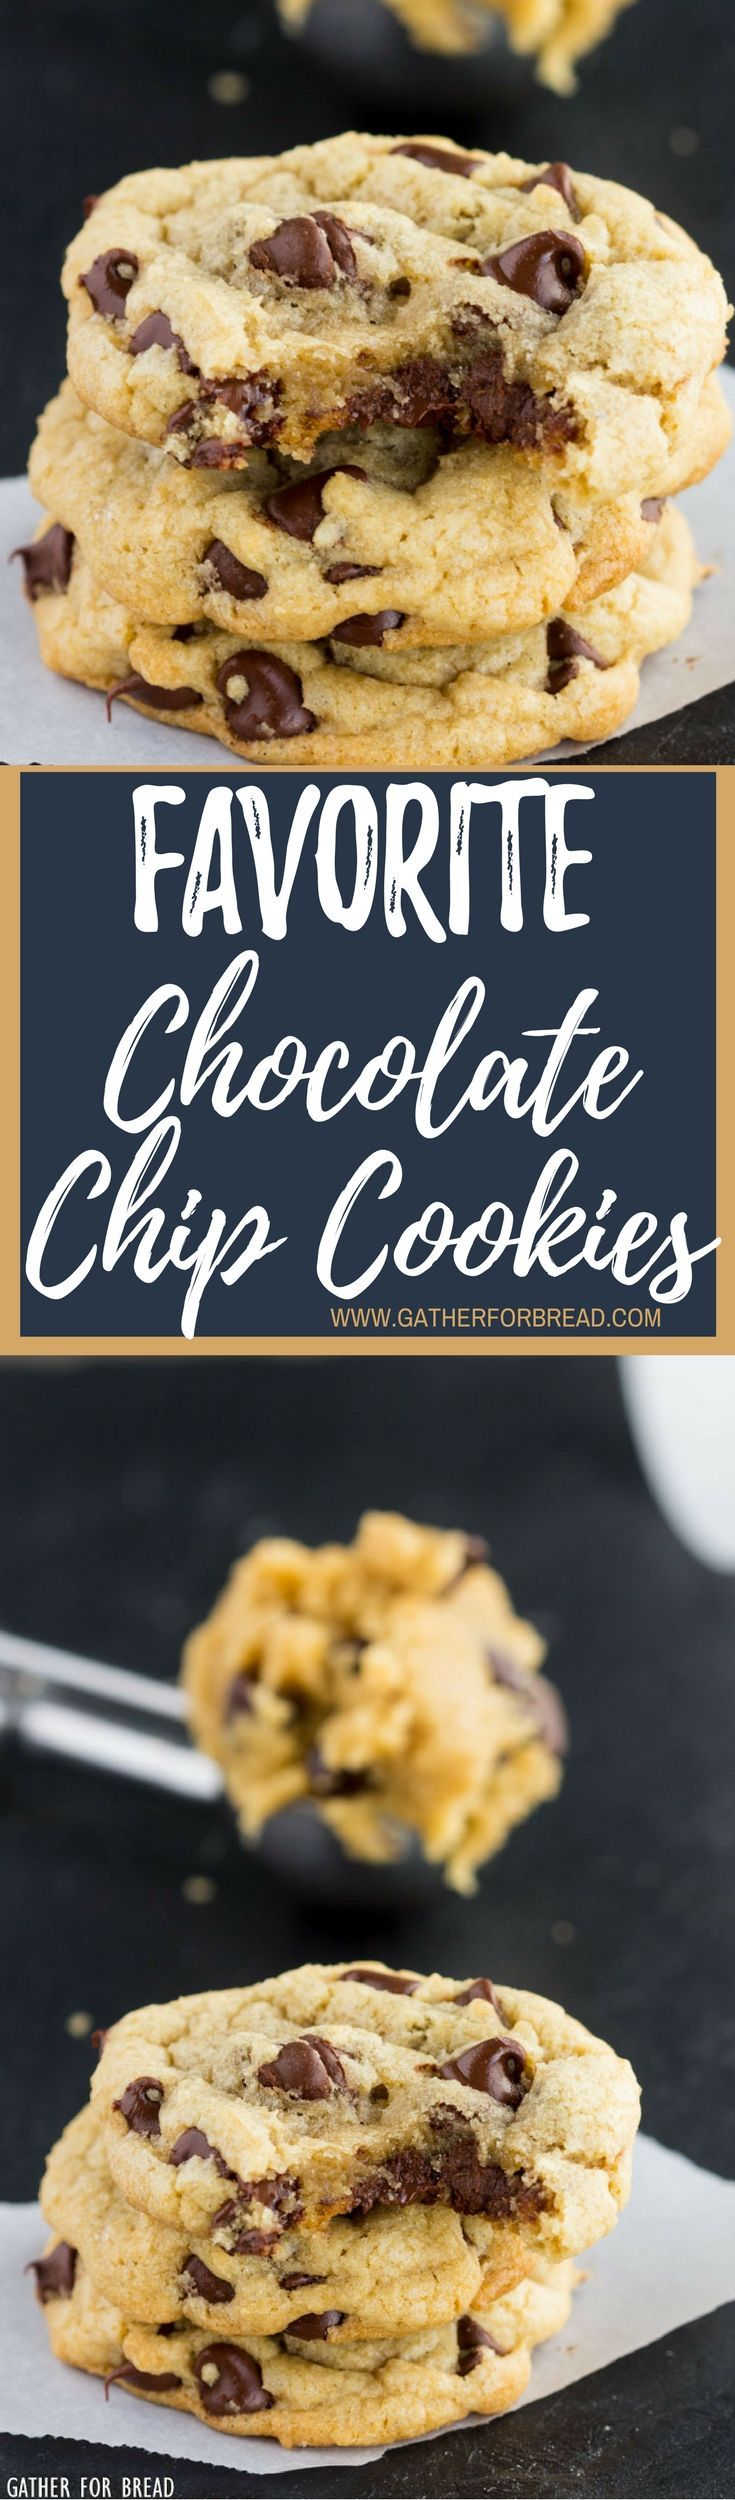 286 best Cookie Recipes! images on Pinterest | Baking cookies ...